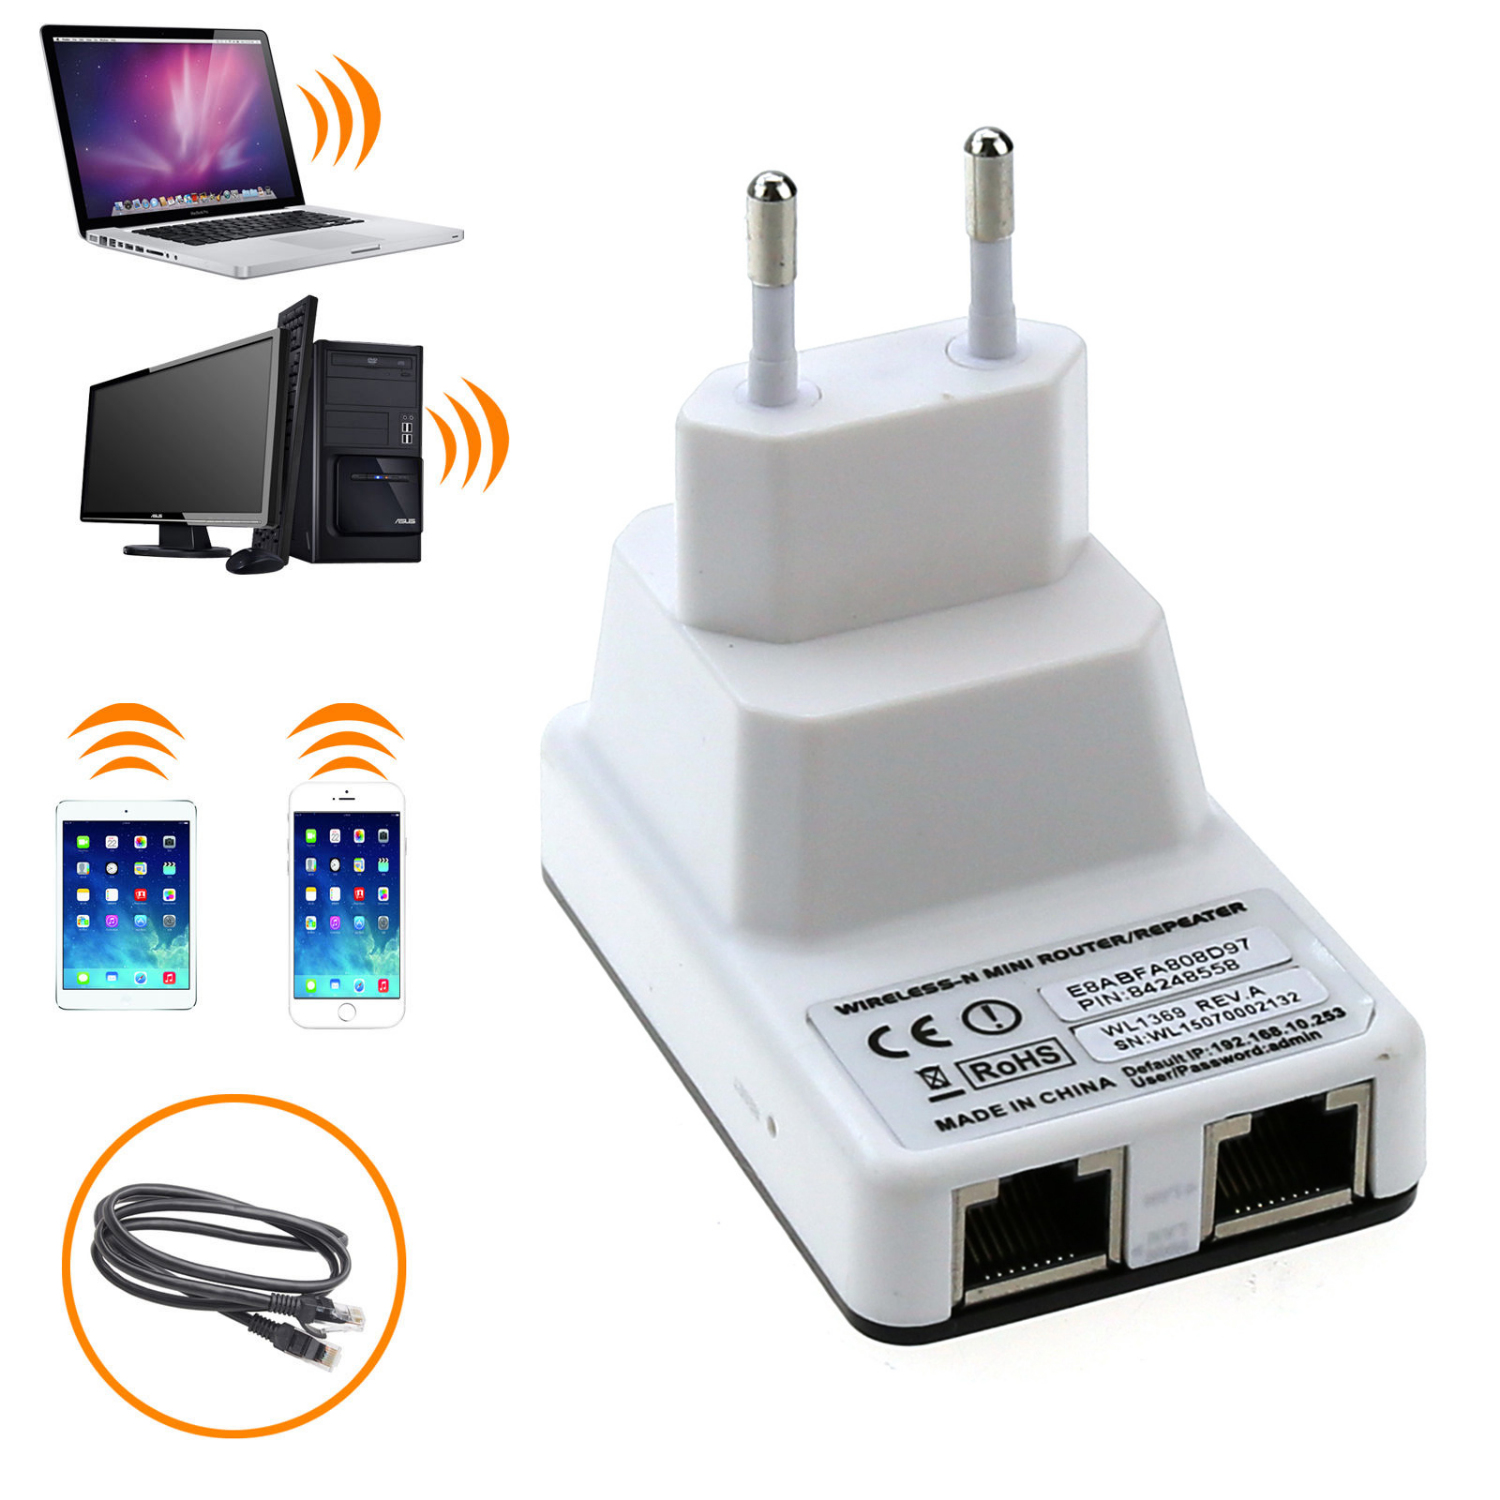 Newest Wireless WiFi Repeater Router Signal Range Extender